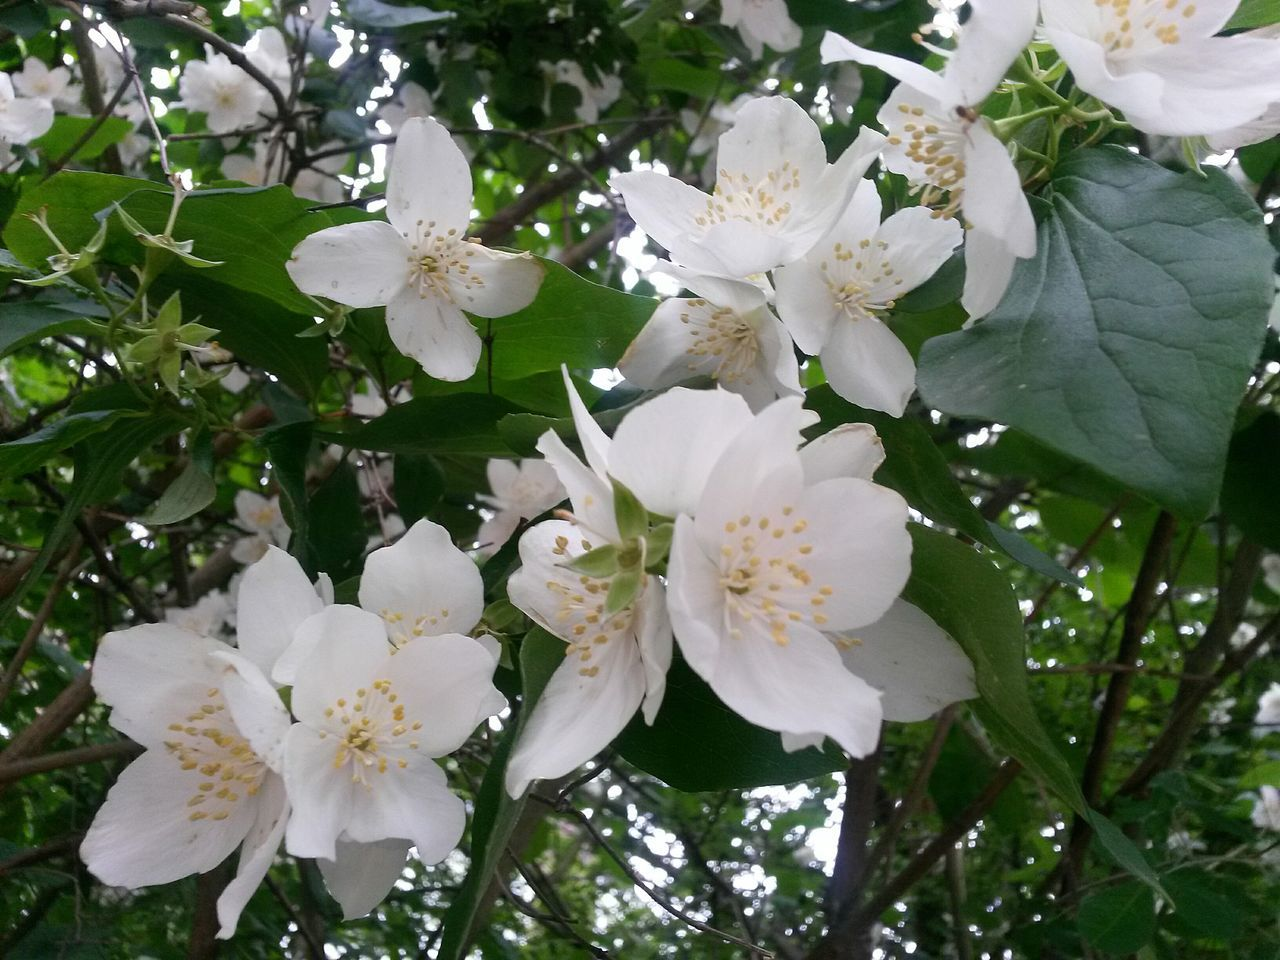 Growth Nature White Color Beauty In Nature Flower Close-up Springtime Blossom Outdoors Branch White Flower Jasmine Flower Freshness